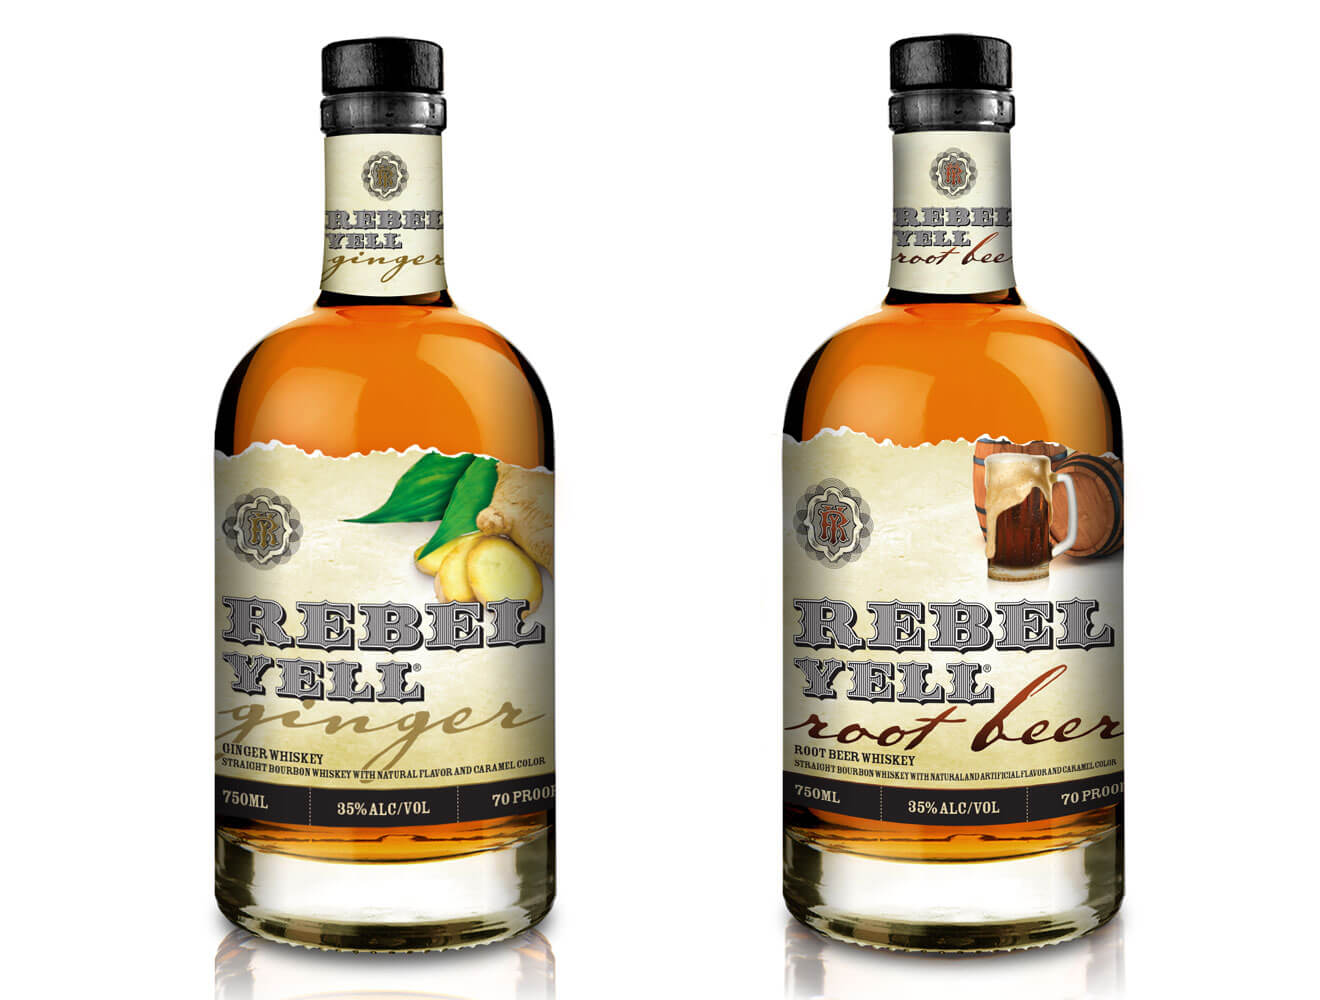 Rebel Yell Bourbon Introduces New Flavors, Ginger and Root Beer, featured brands